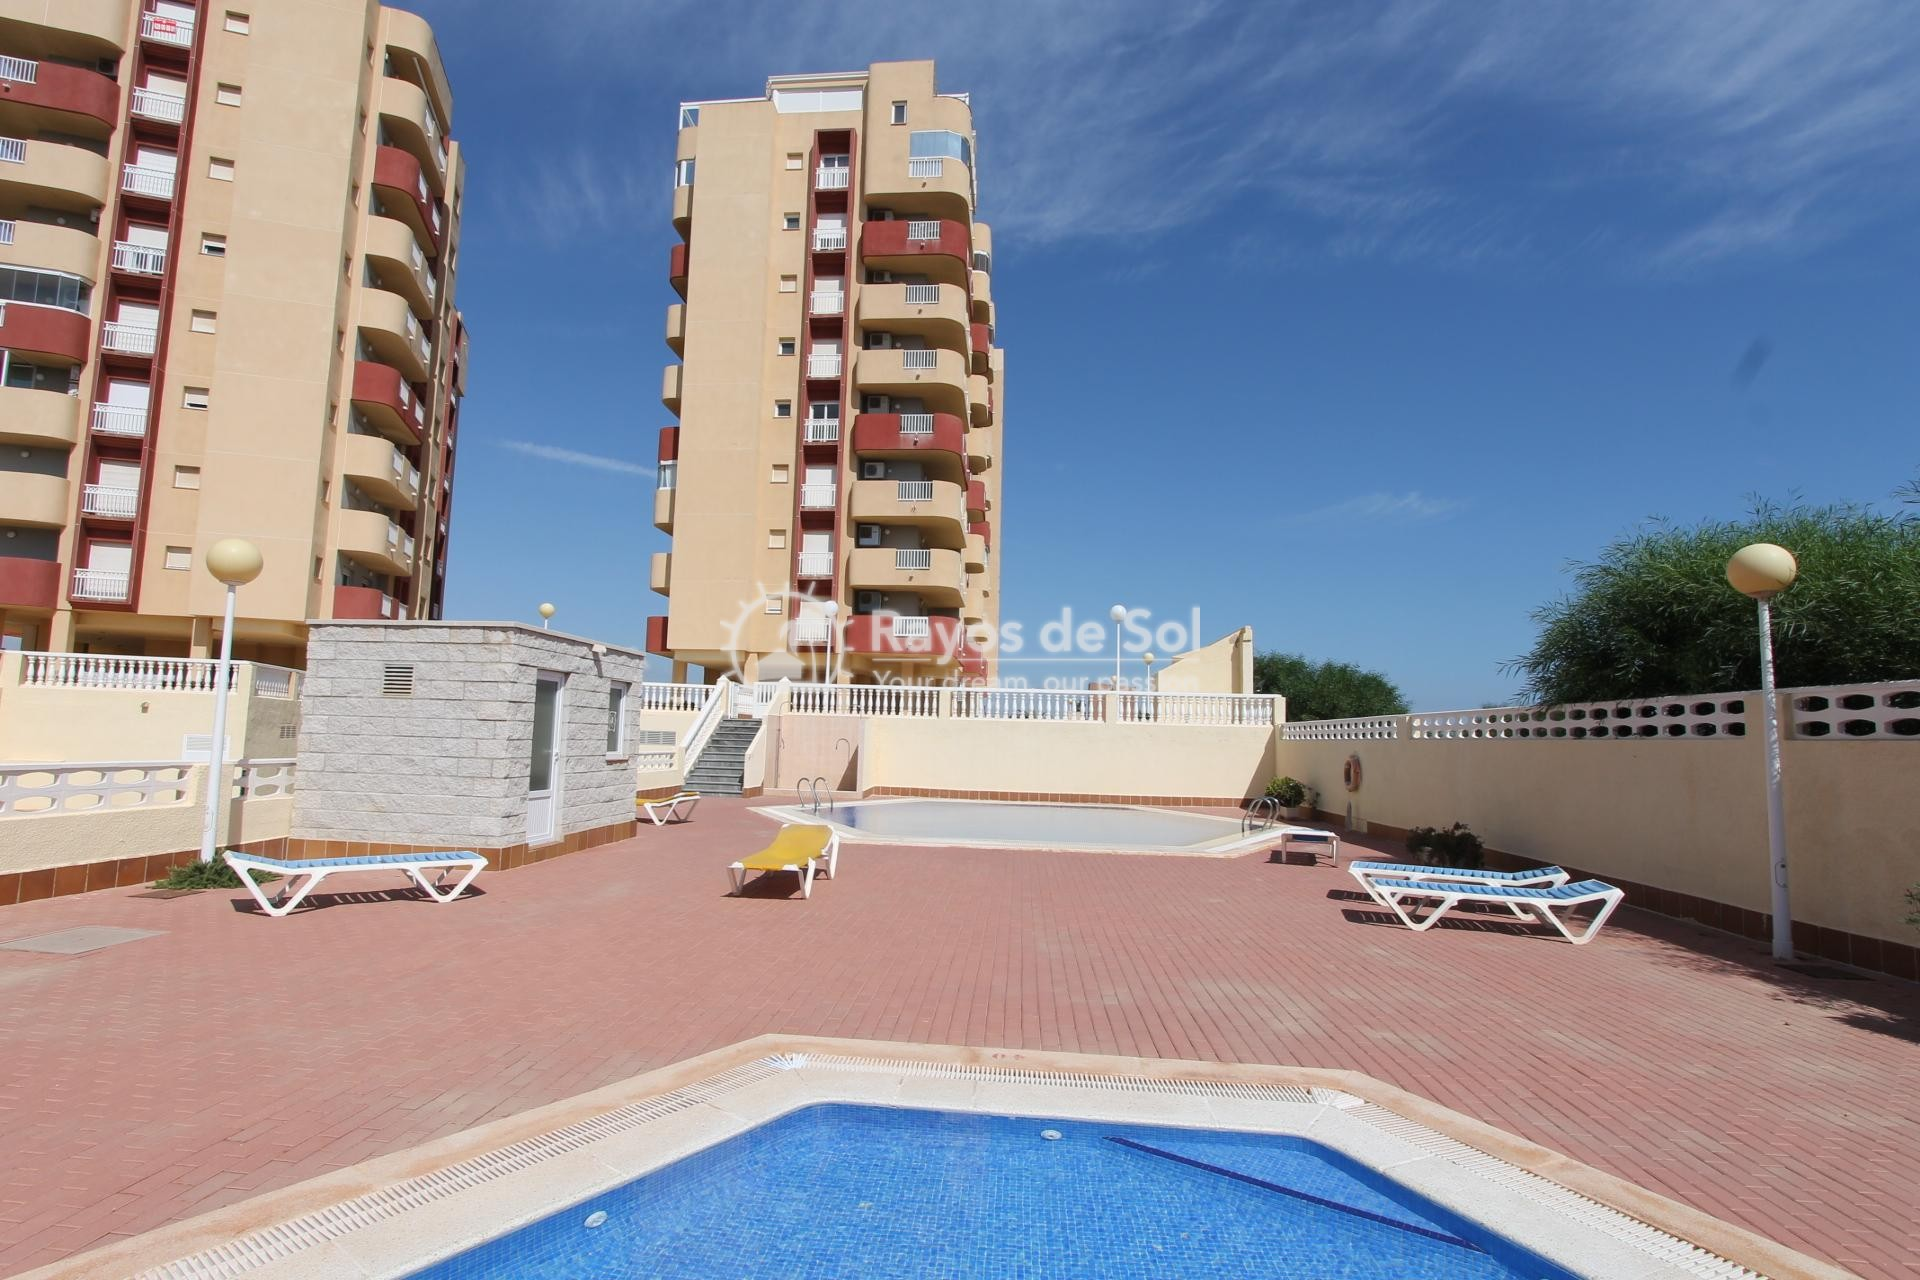 Apartment  in La Manga del Mar Menor, Costa Cálida (mp276) - 2